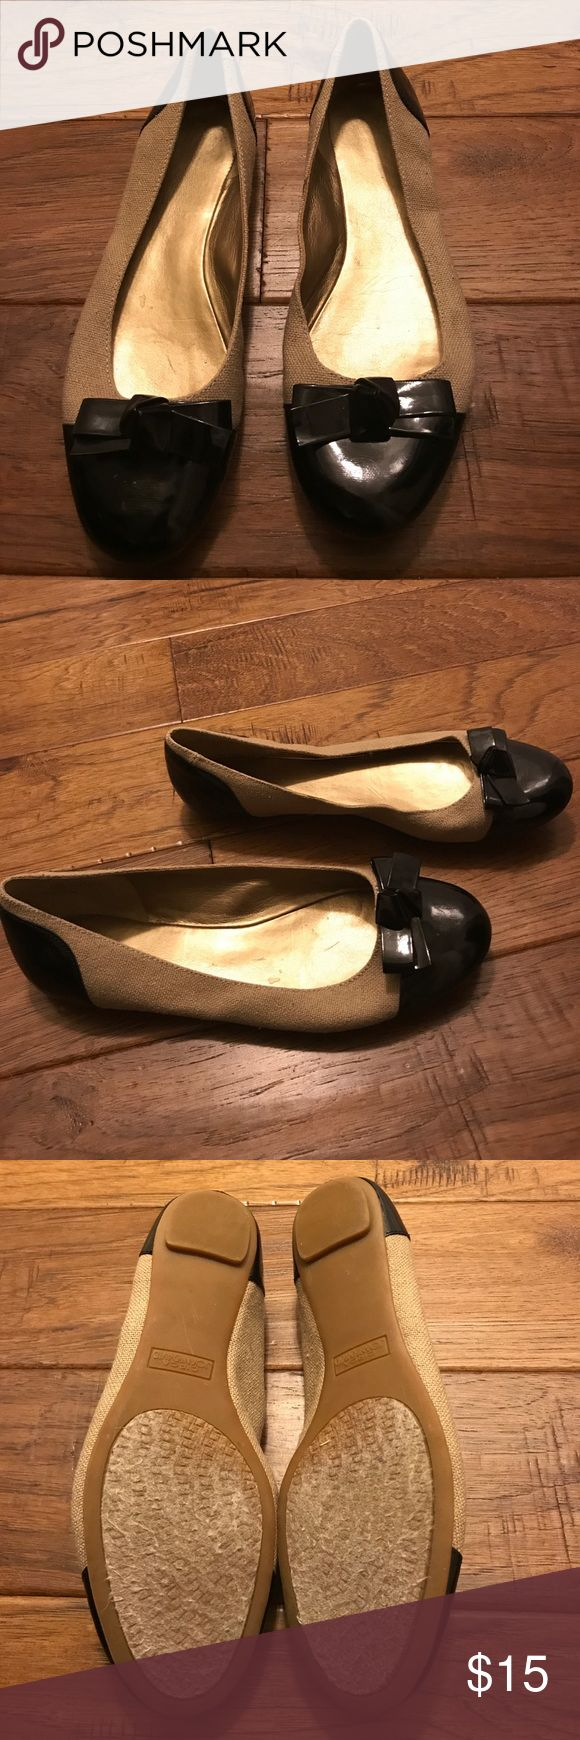 Joan & David Canvas Tan & Black Ballet Flats |  8 Joan & David Canvas Ballet Flats Size 8. Great Condition. Joan & David Shoes Flats & Loafers